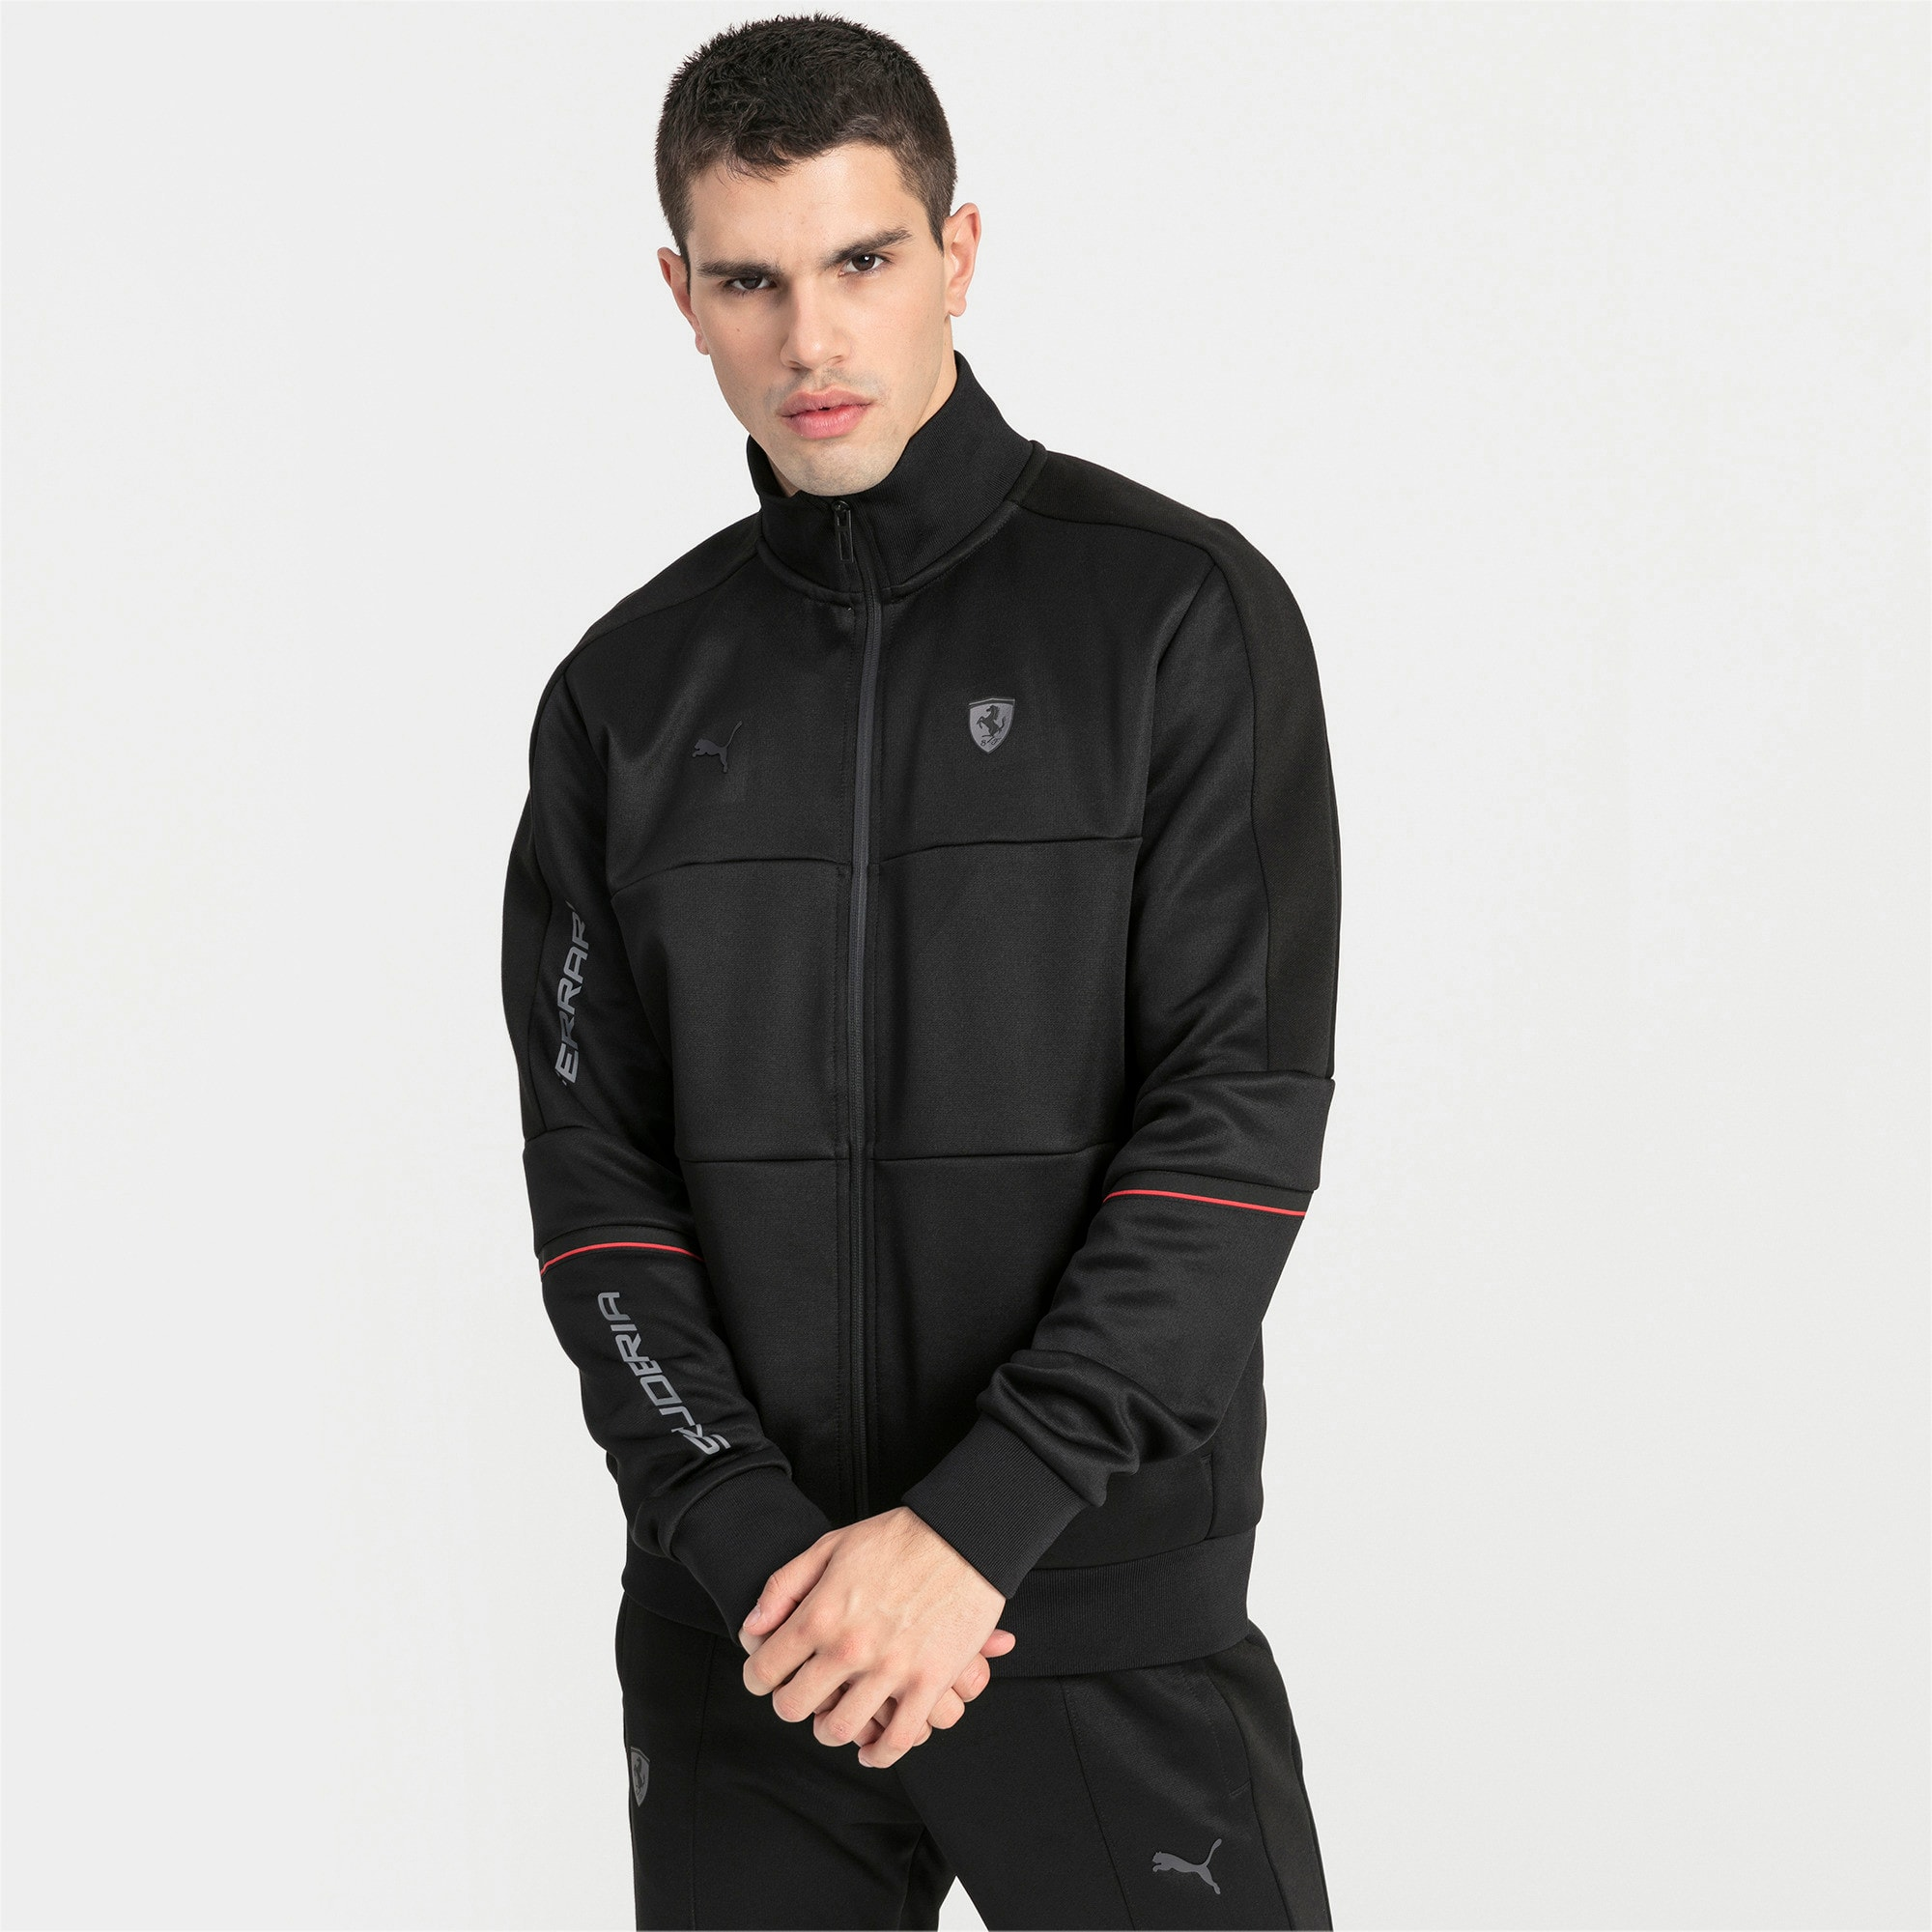 Thumbnail 1 of Ferrari T7 Herren Trainingsjacke, Puma Black, medium